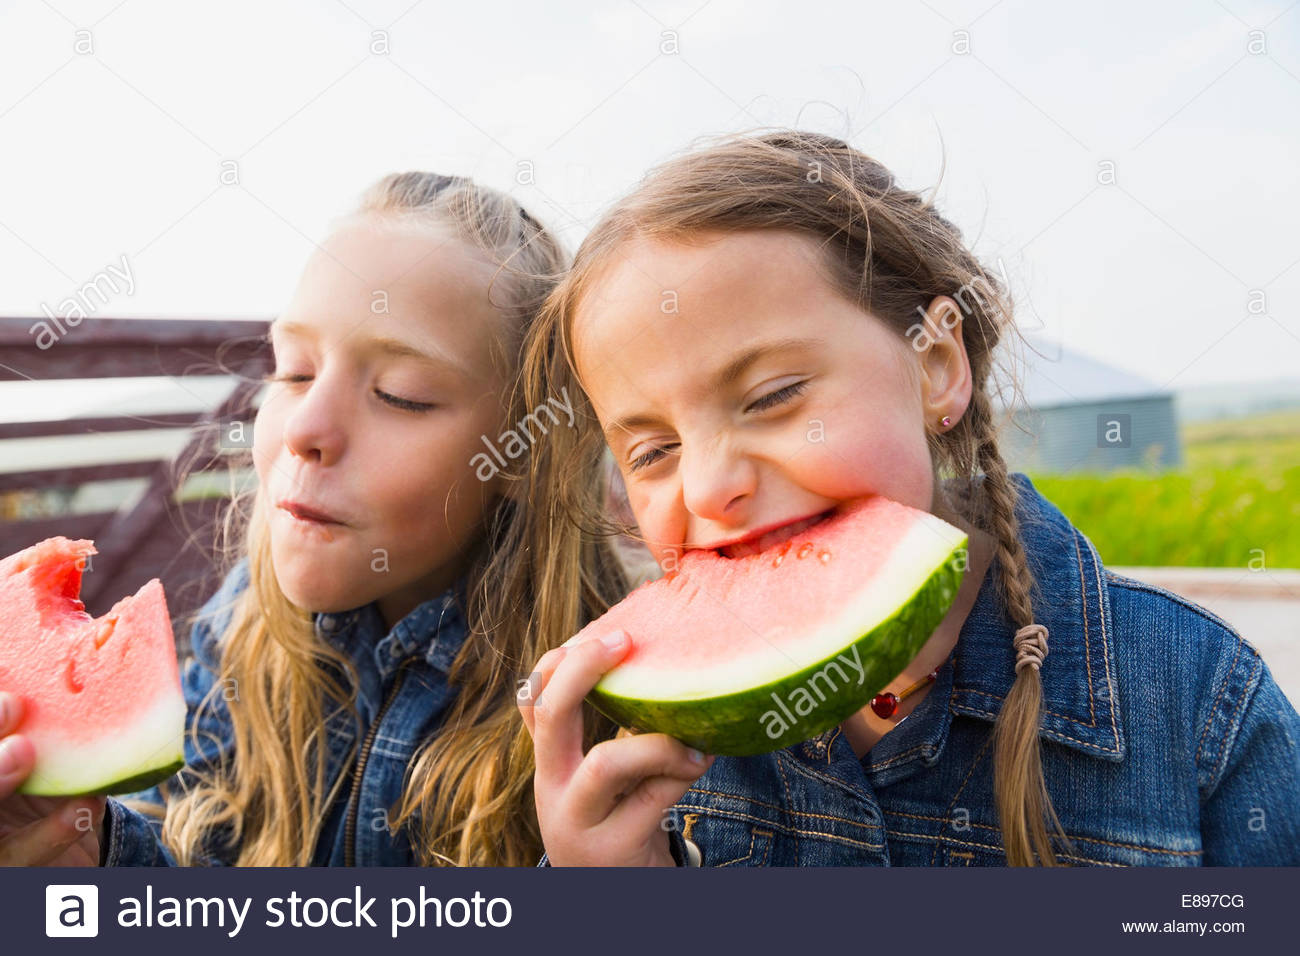 Girls biting into watermelon - Stock Image